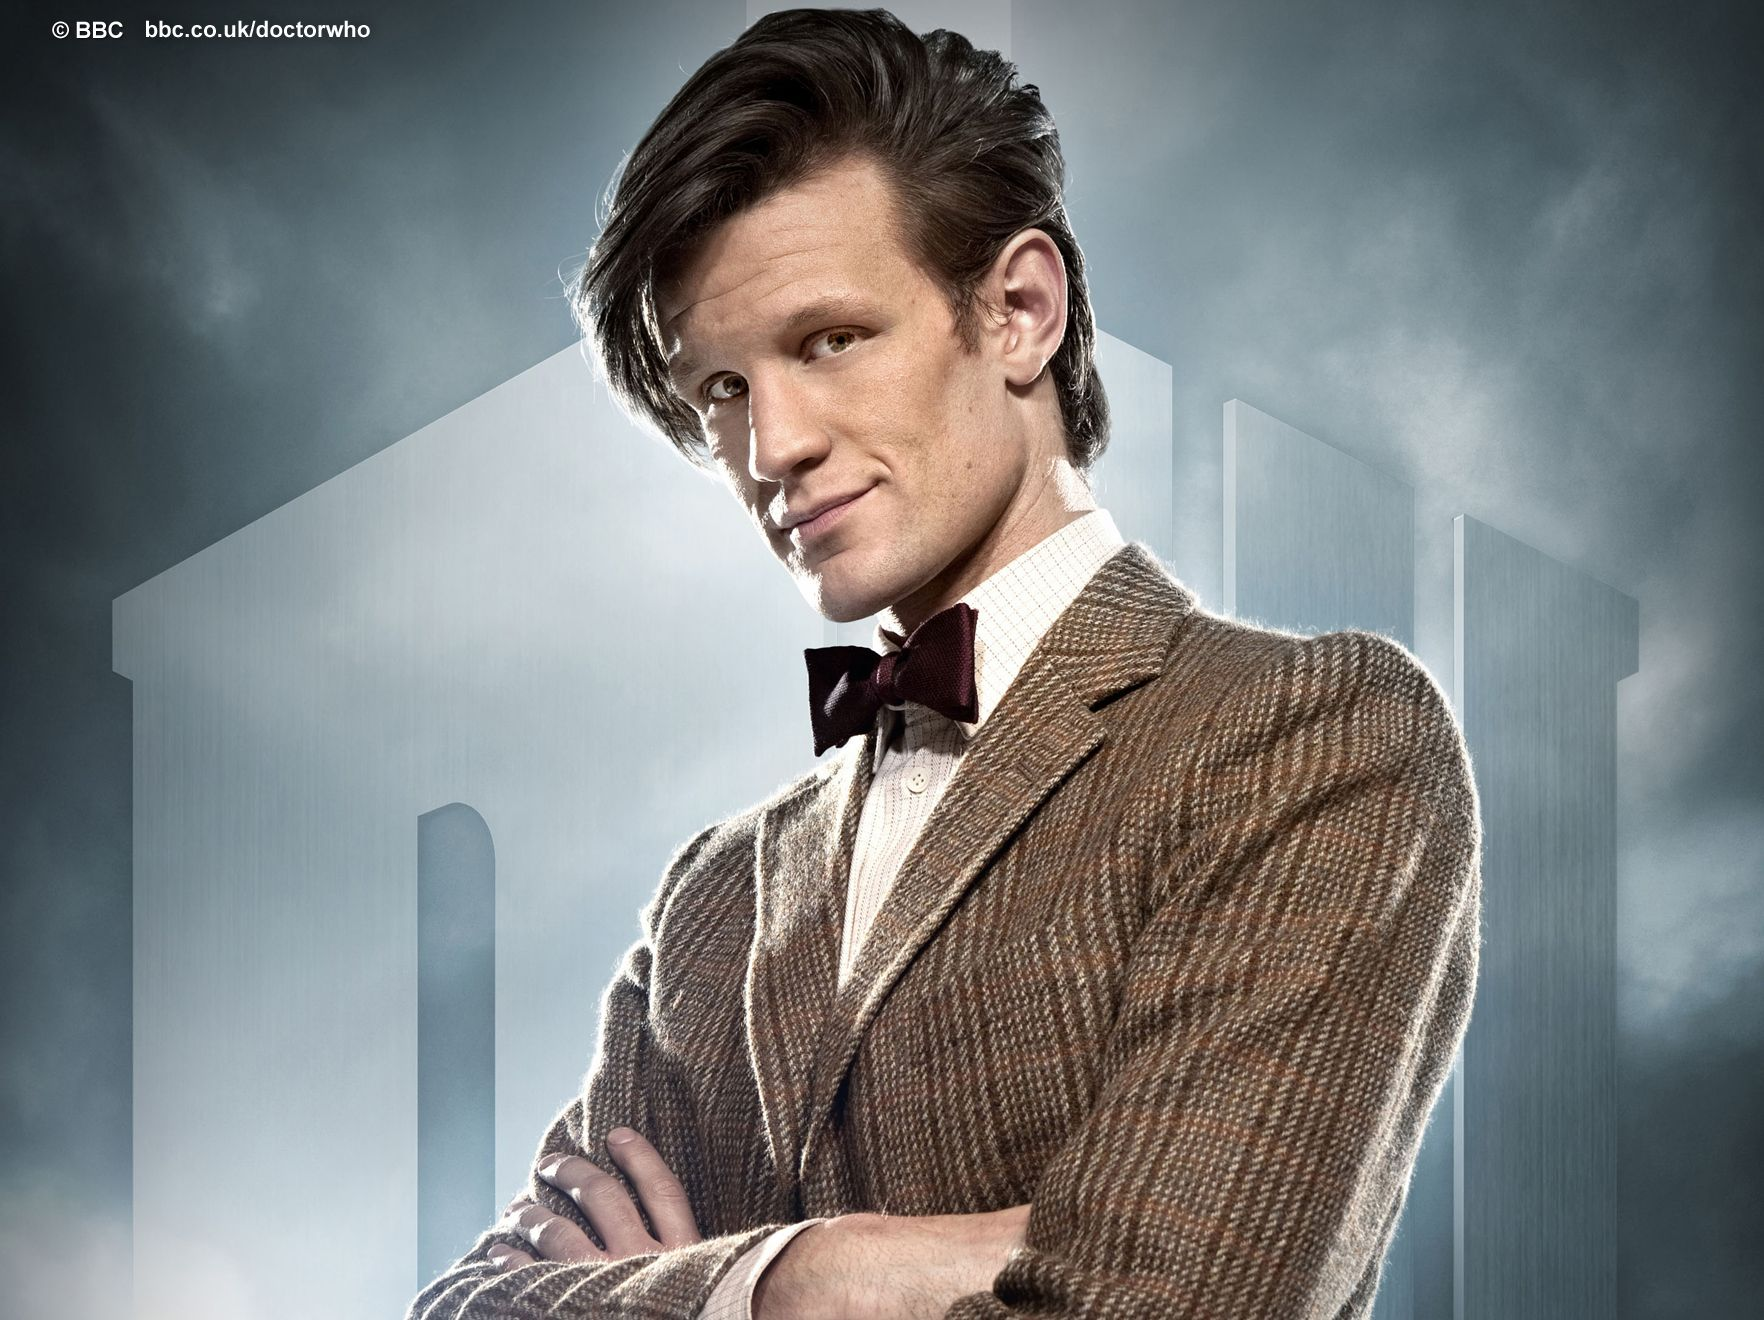 Google themes doctor who - Google Image Result For Http Cinefantastiqueonline Com Wp Content Doctor Mattdoctor Who